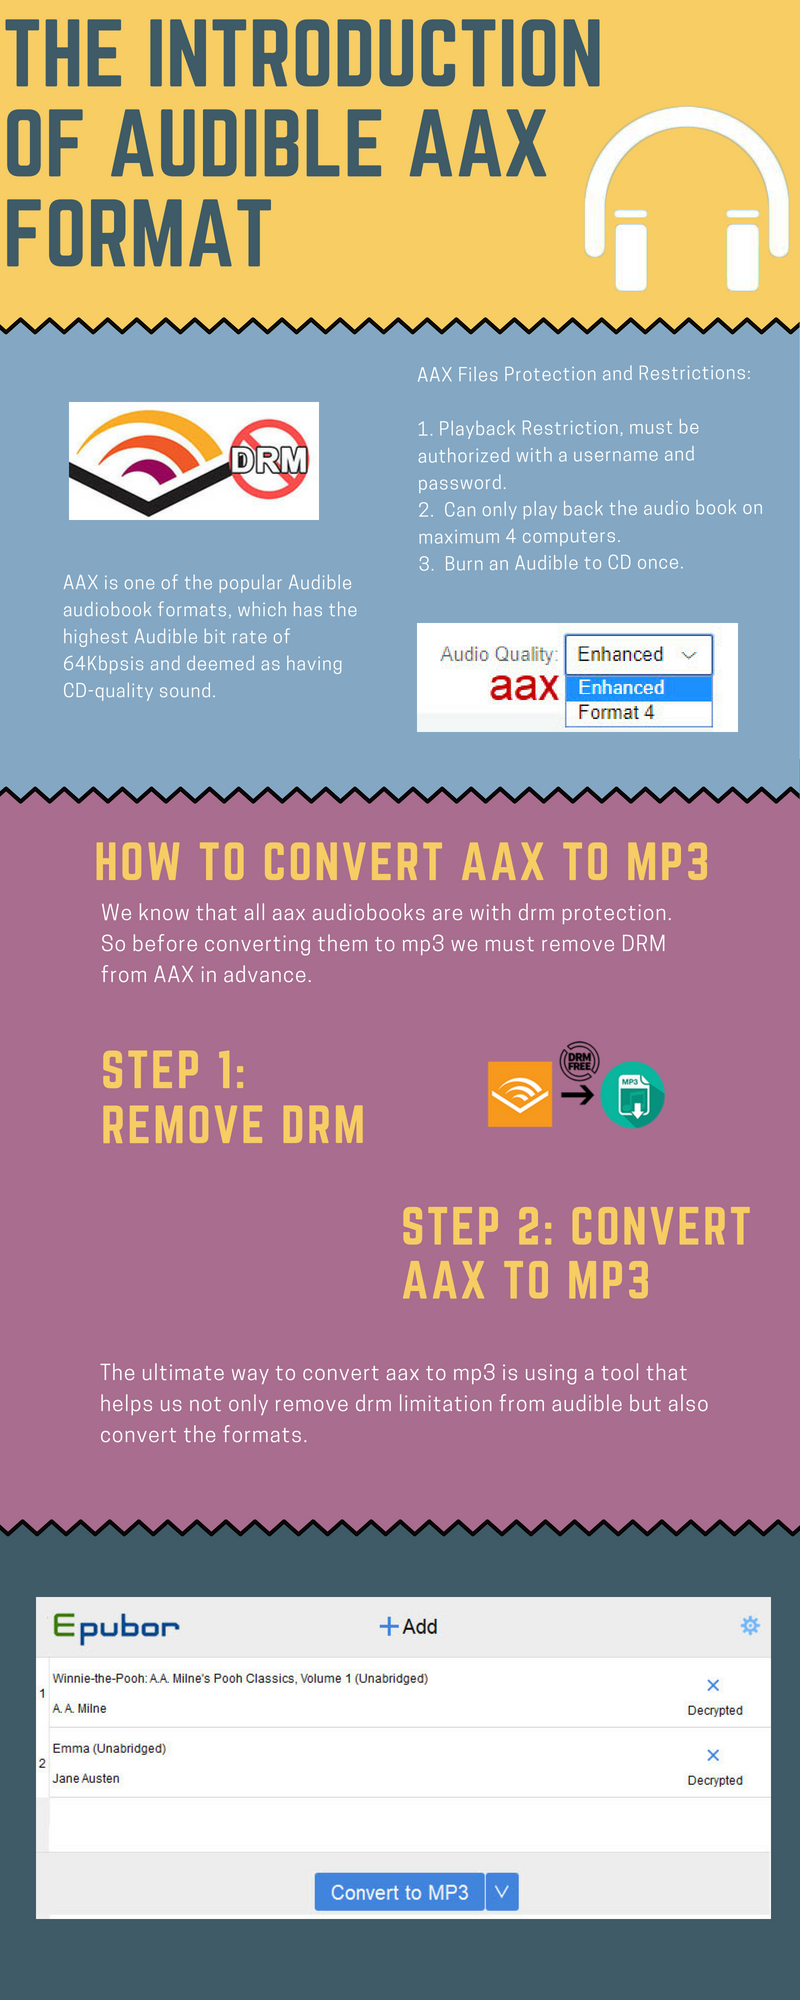 convert aax to mp3 infographic